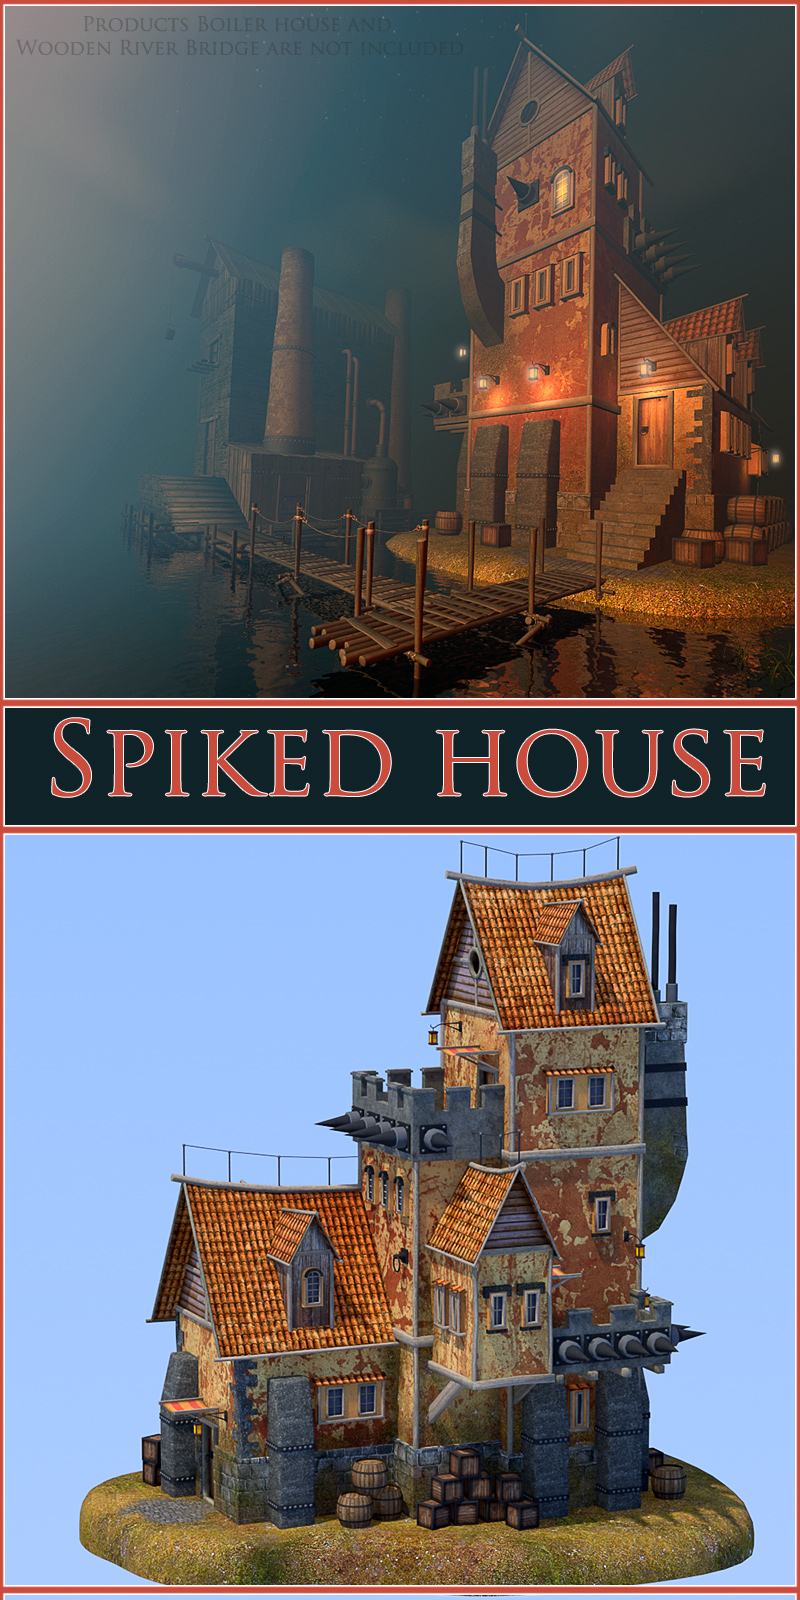 Spiked house